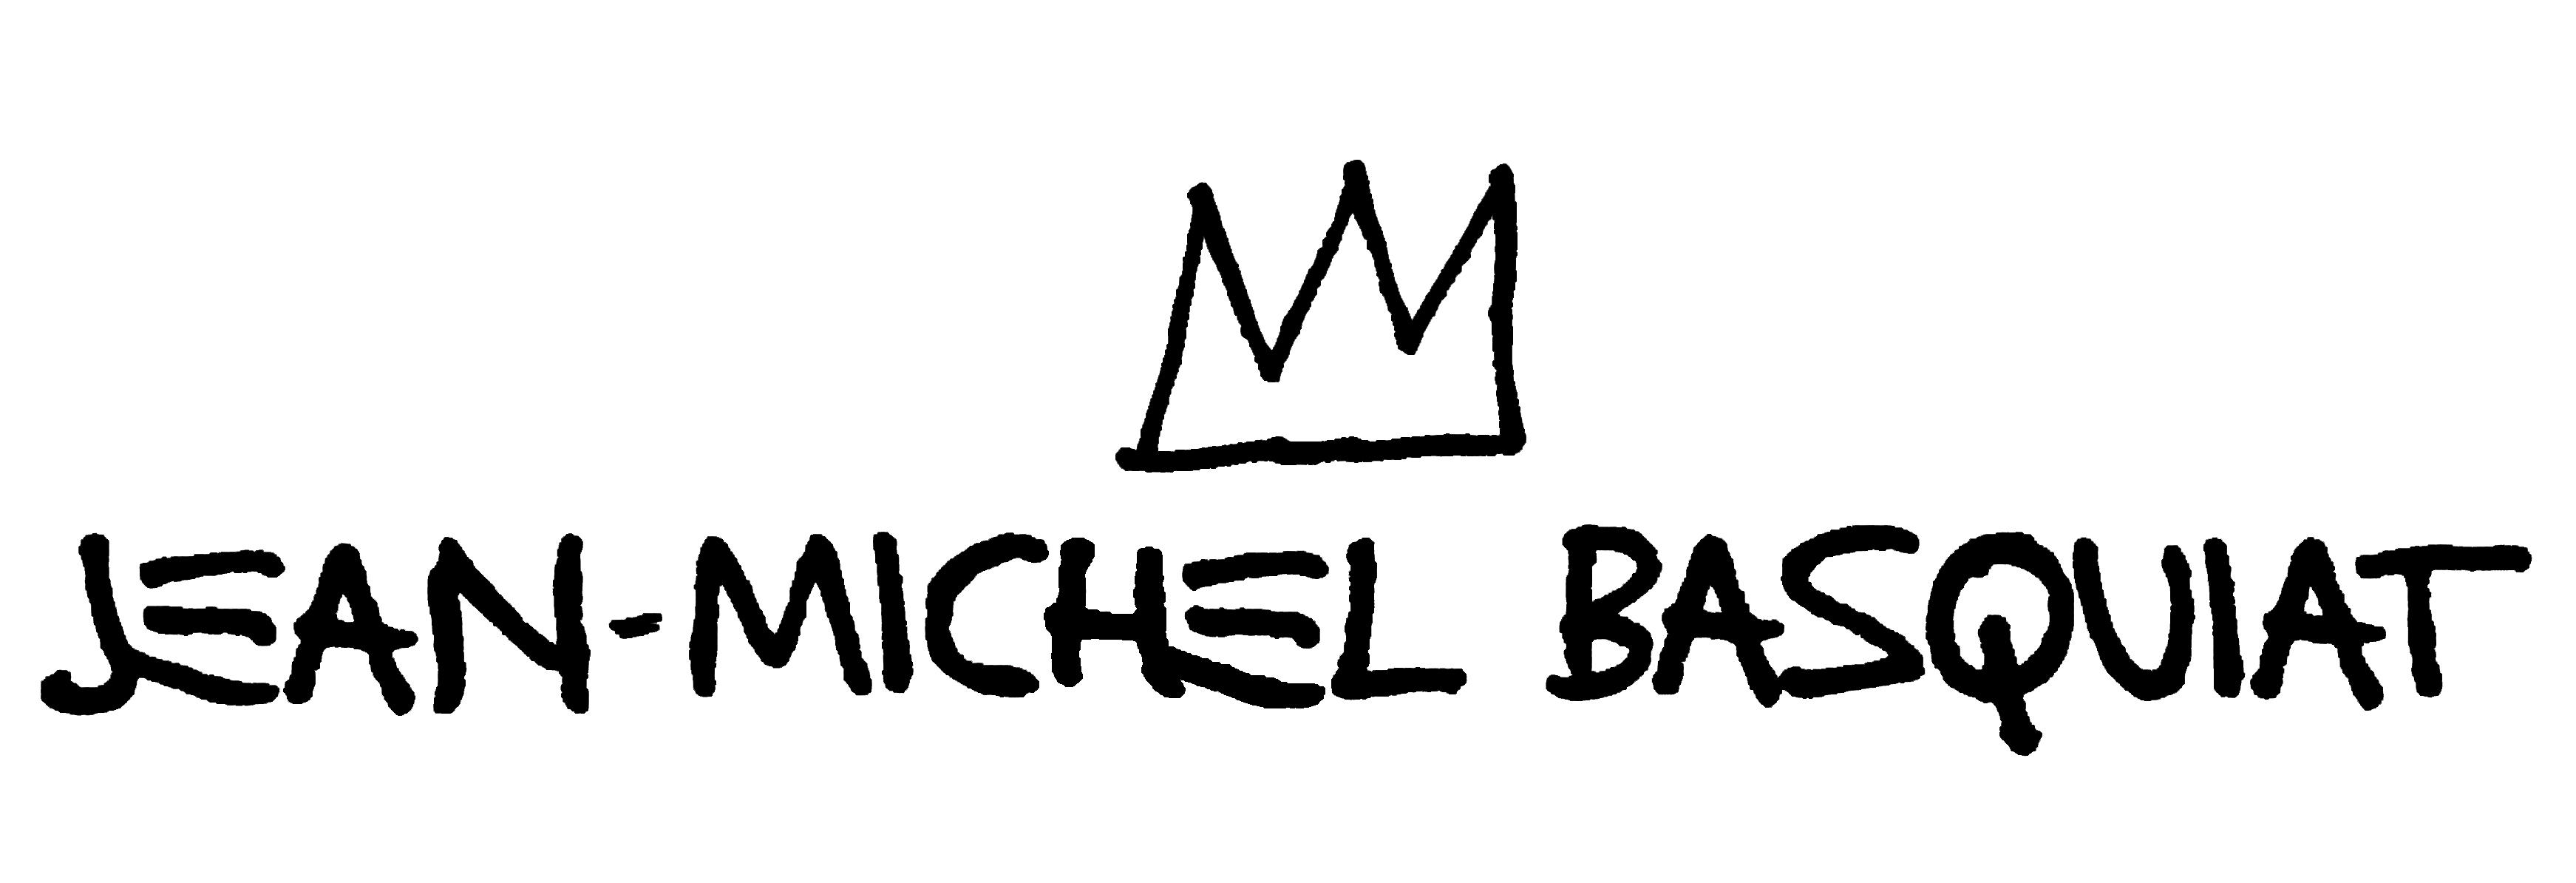 Image result for basquiat logo png